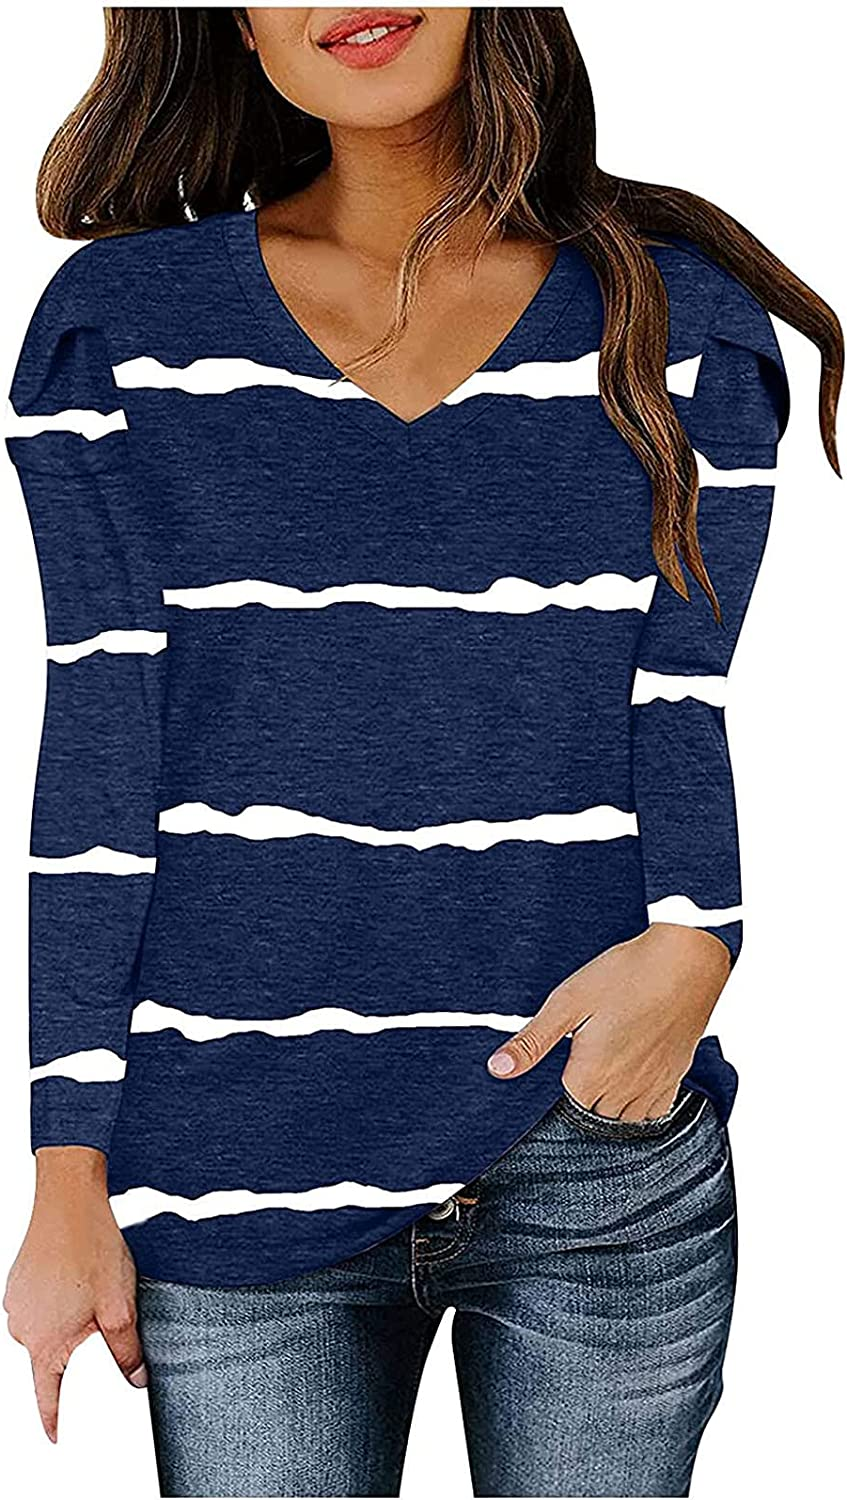 Womens Fall Stripe Print Tops Casual Long Sleeve V-Neck Shirt Loose Fit Workout Tunic Blouse Sport Pullover Comfy Tee